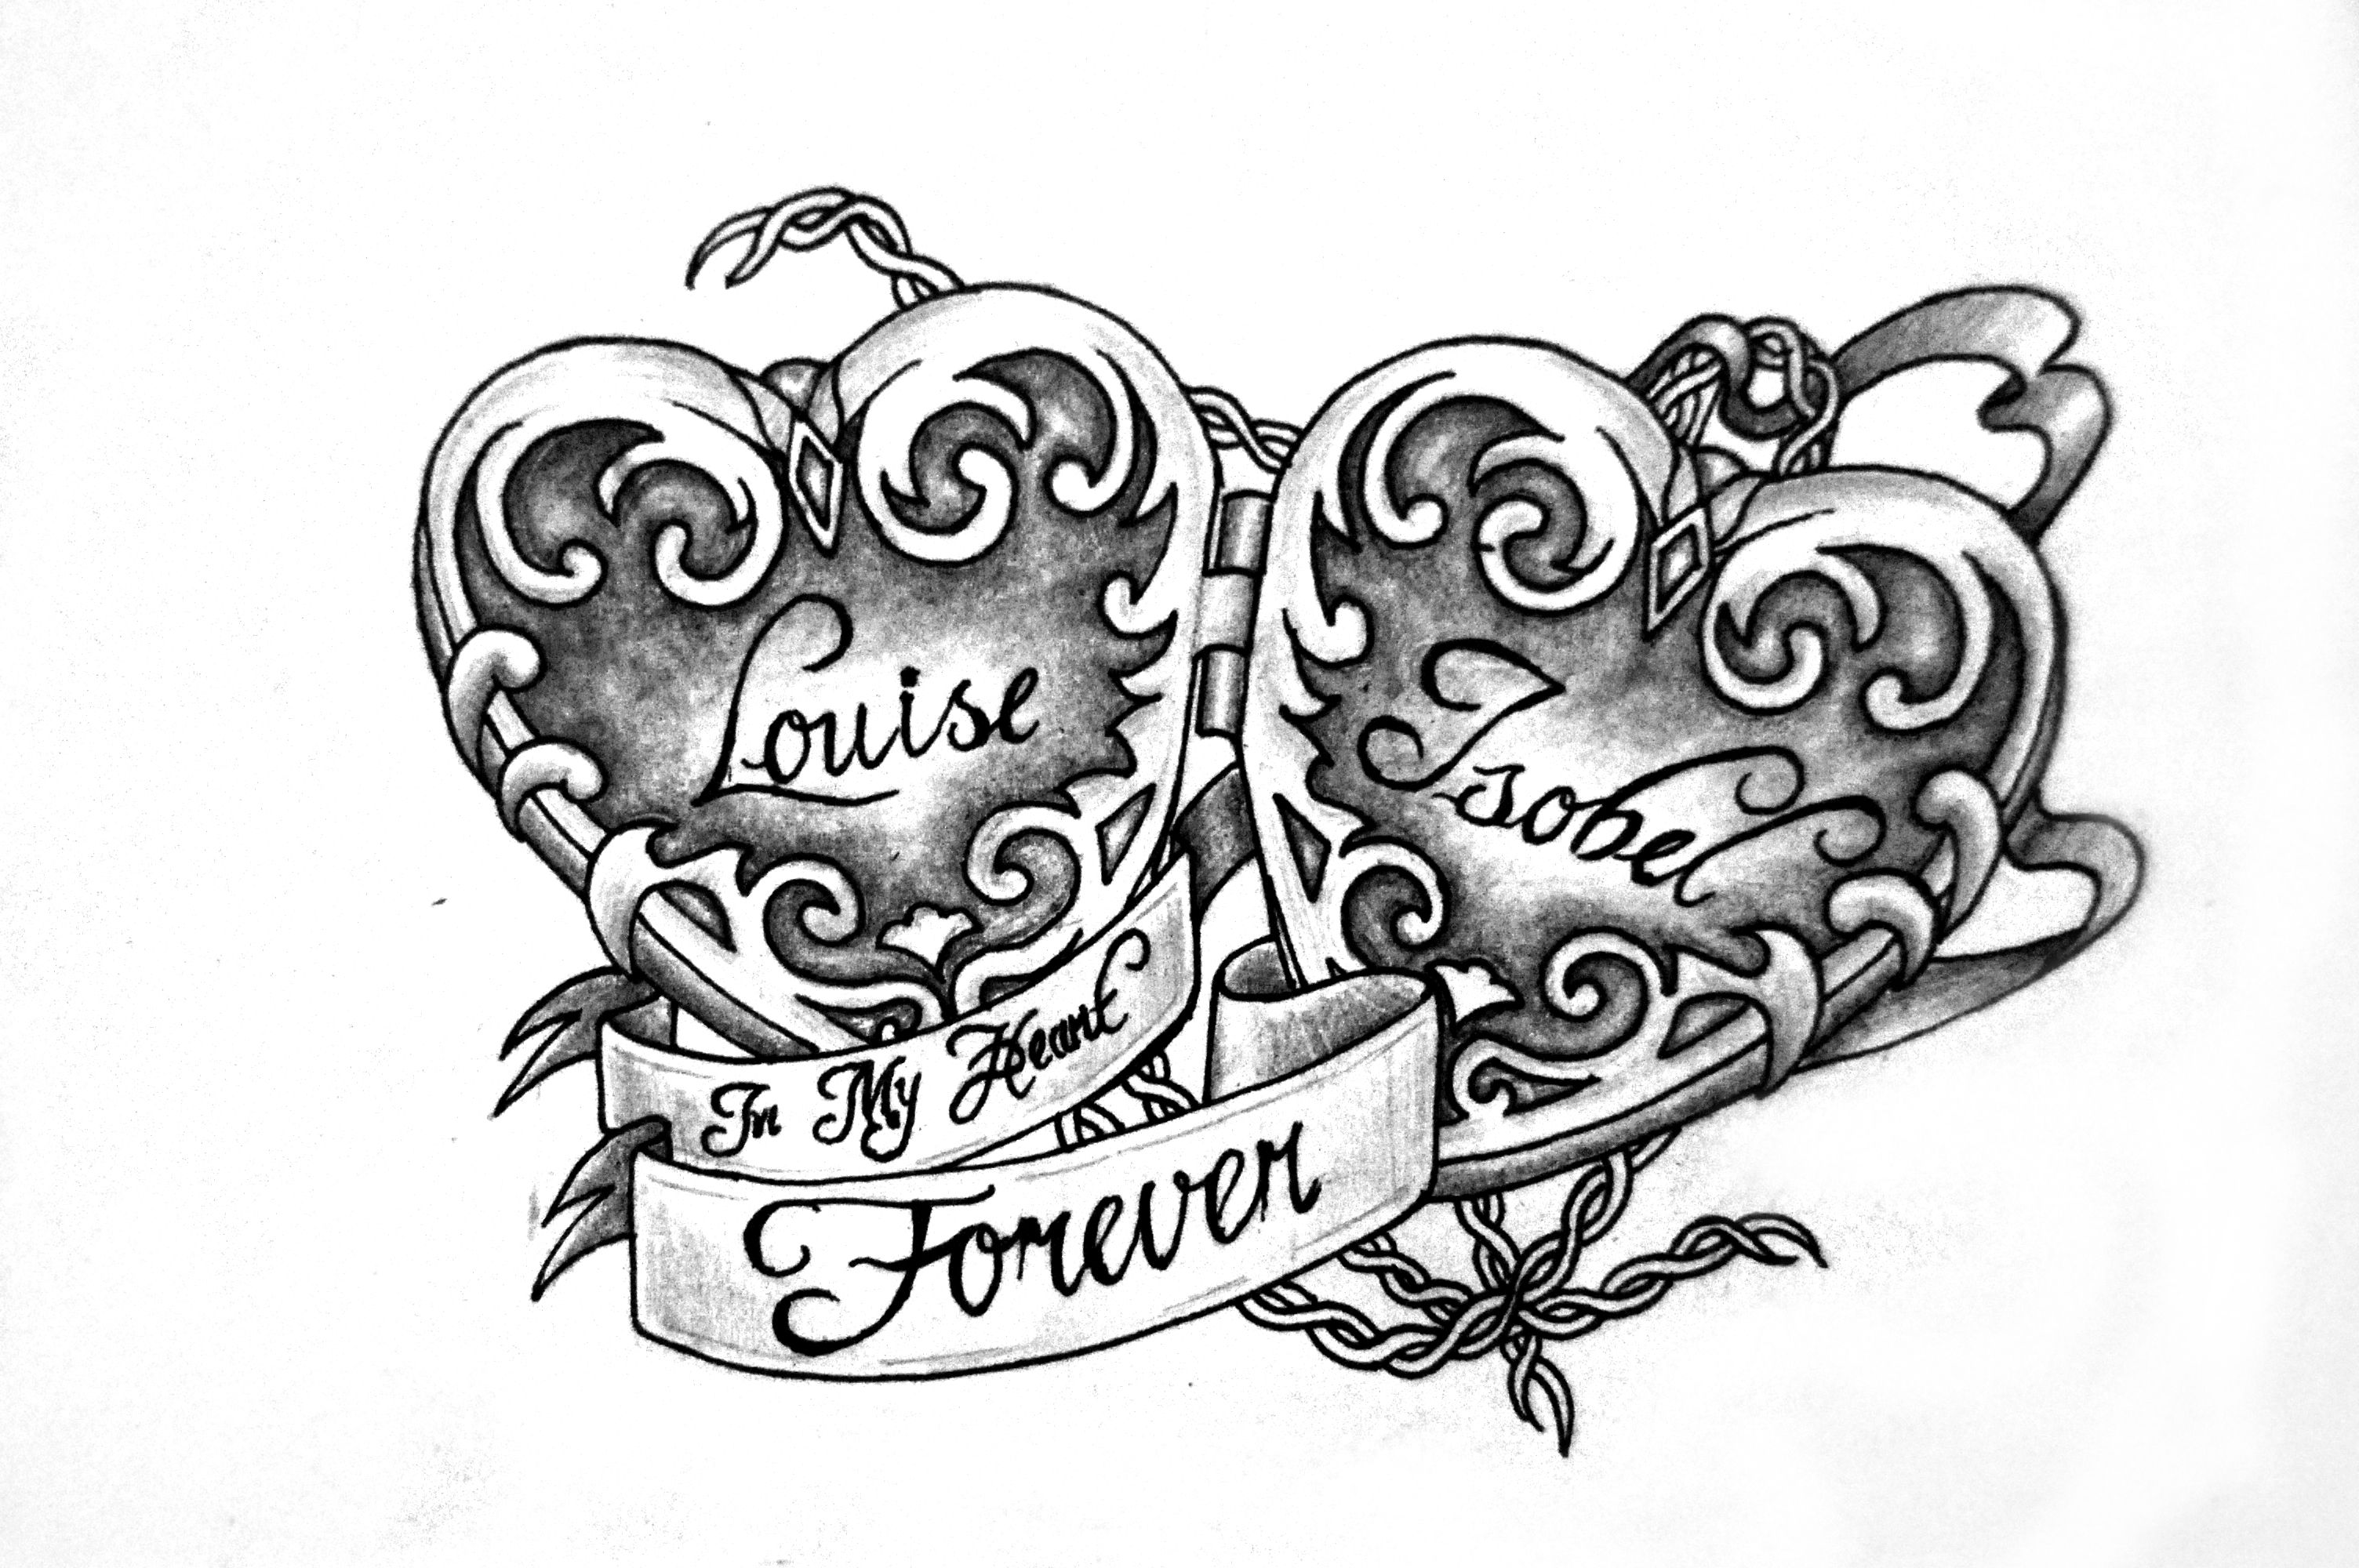 Pics photos heart lock flowers n key tattoo design - Heart Locket Tattoo Design By Charlotte Lucyy On Deviantart I Want This With My Grandparents Names In It